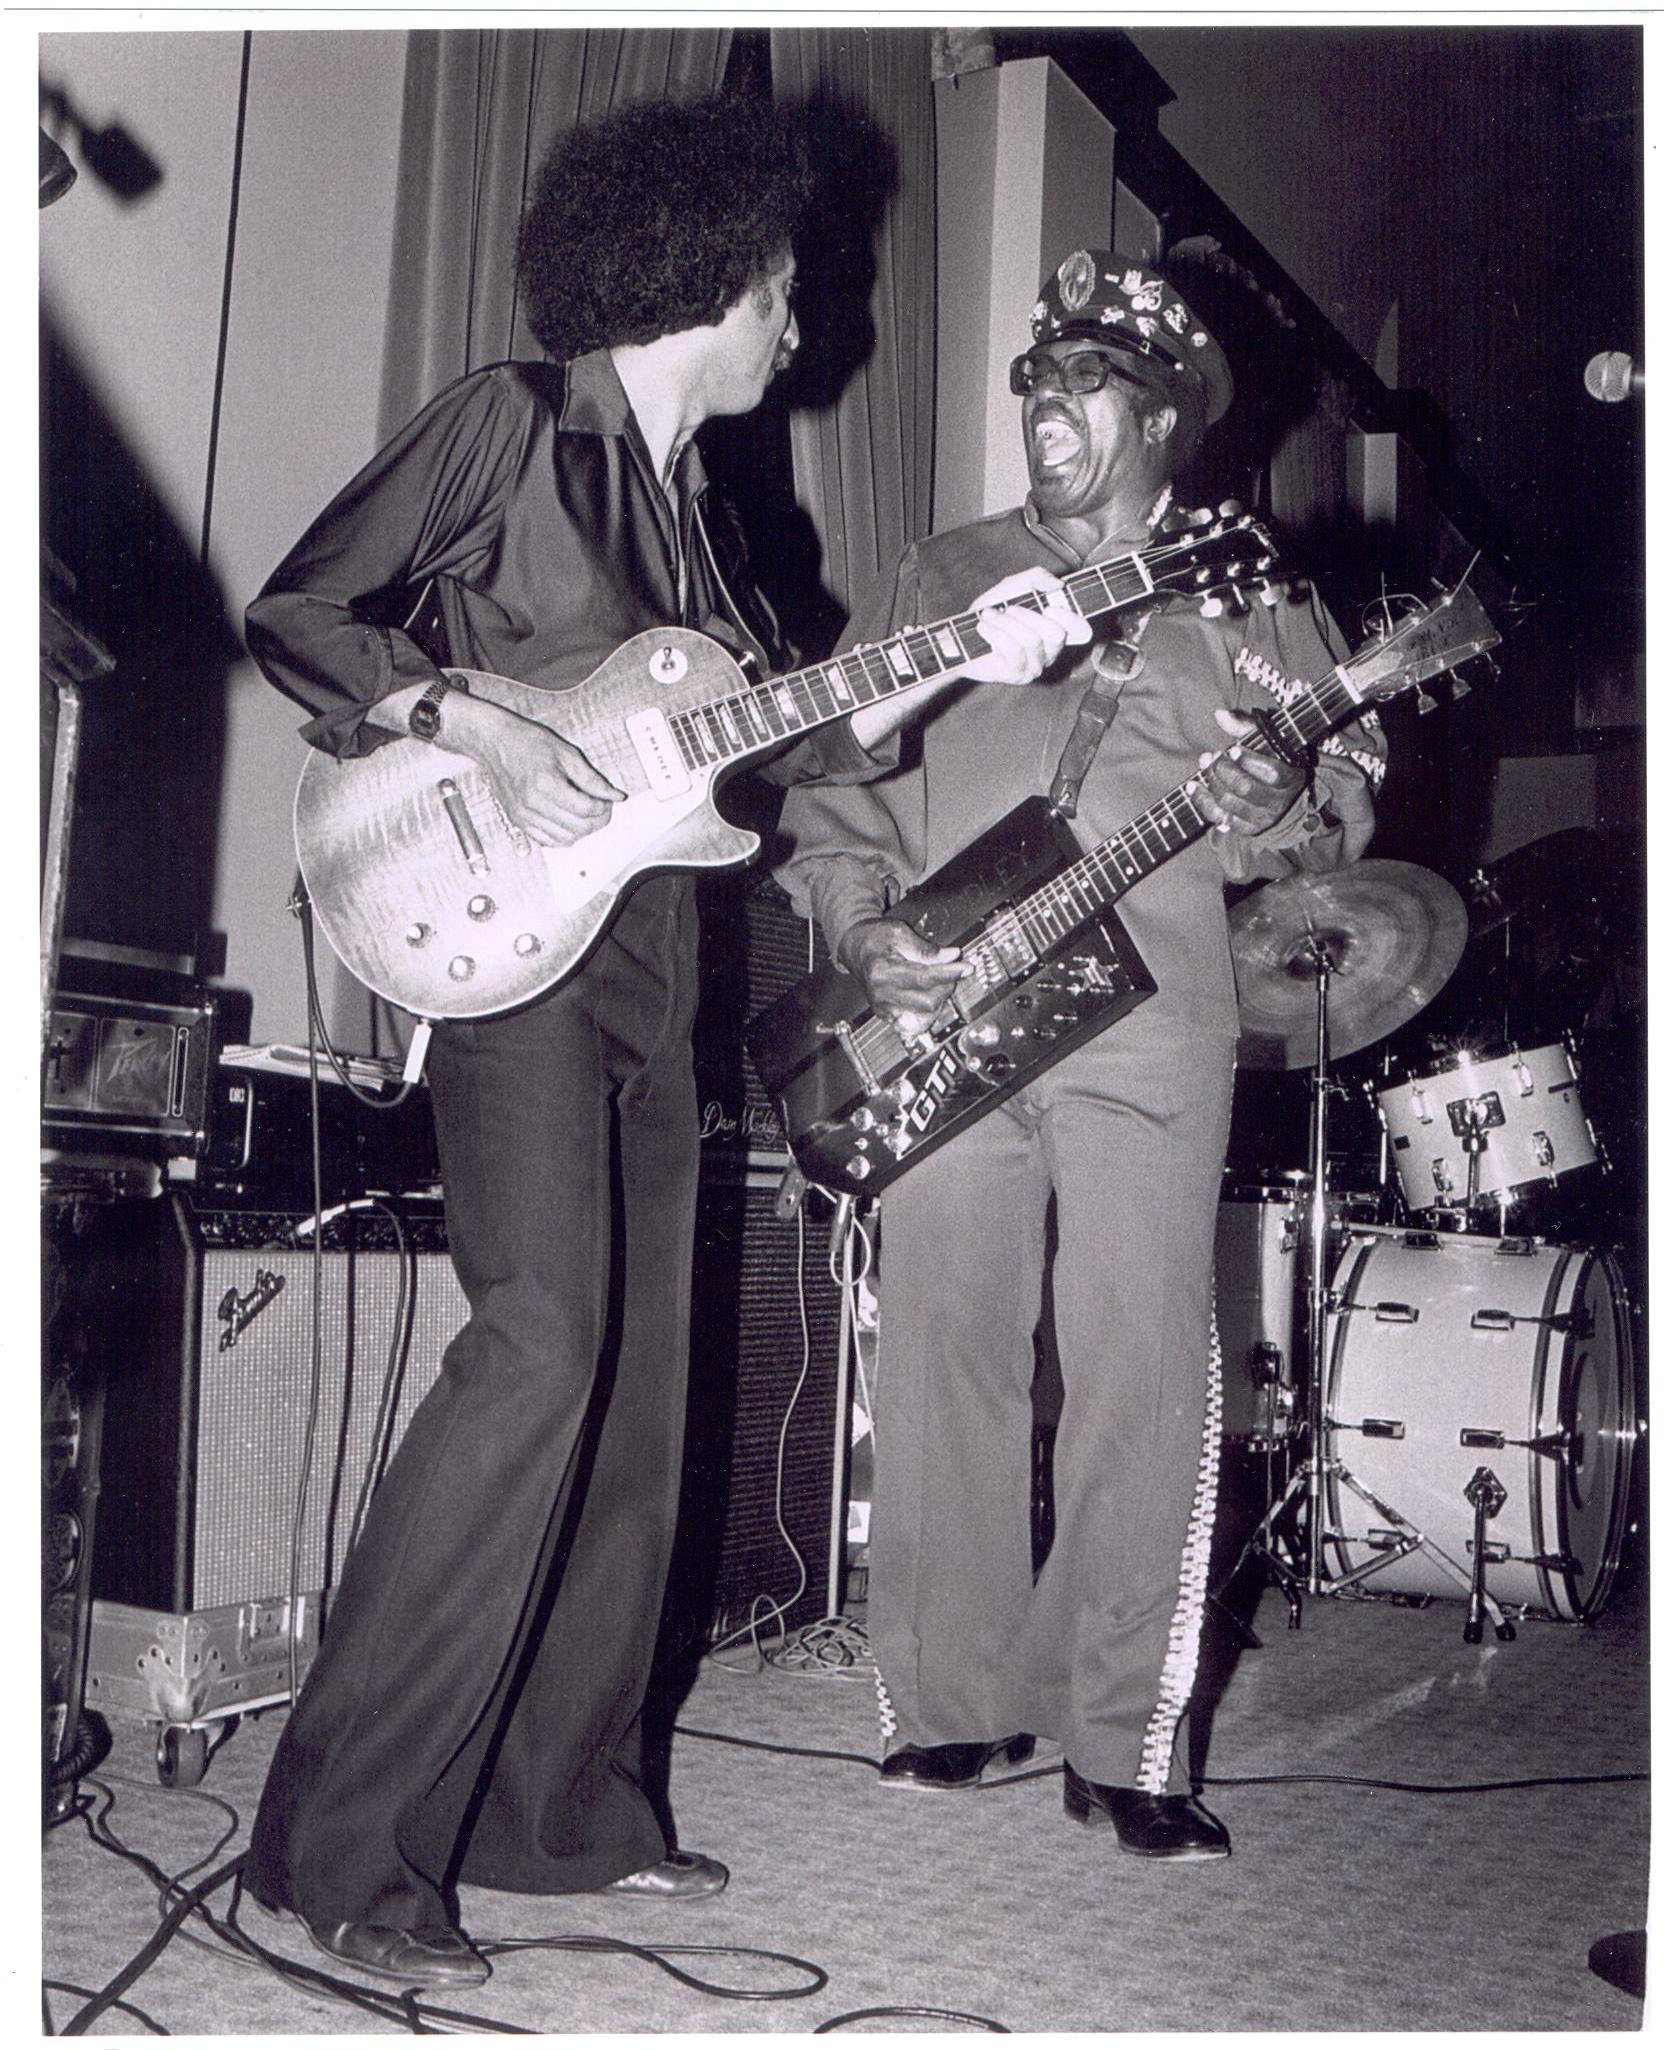 John García performing with Bo Diddley.